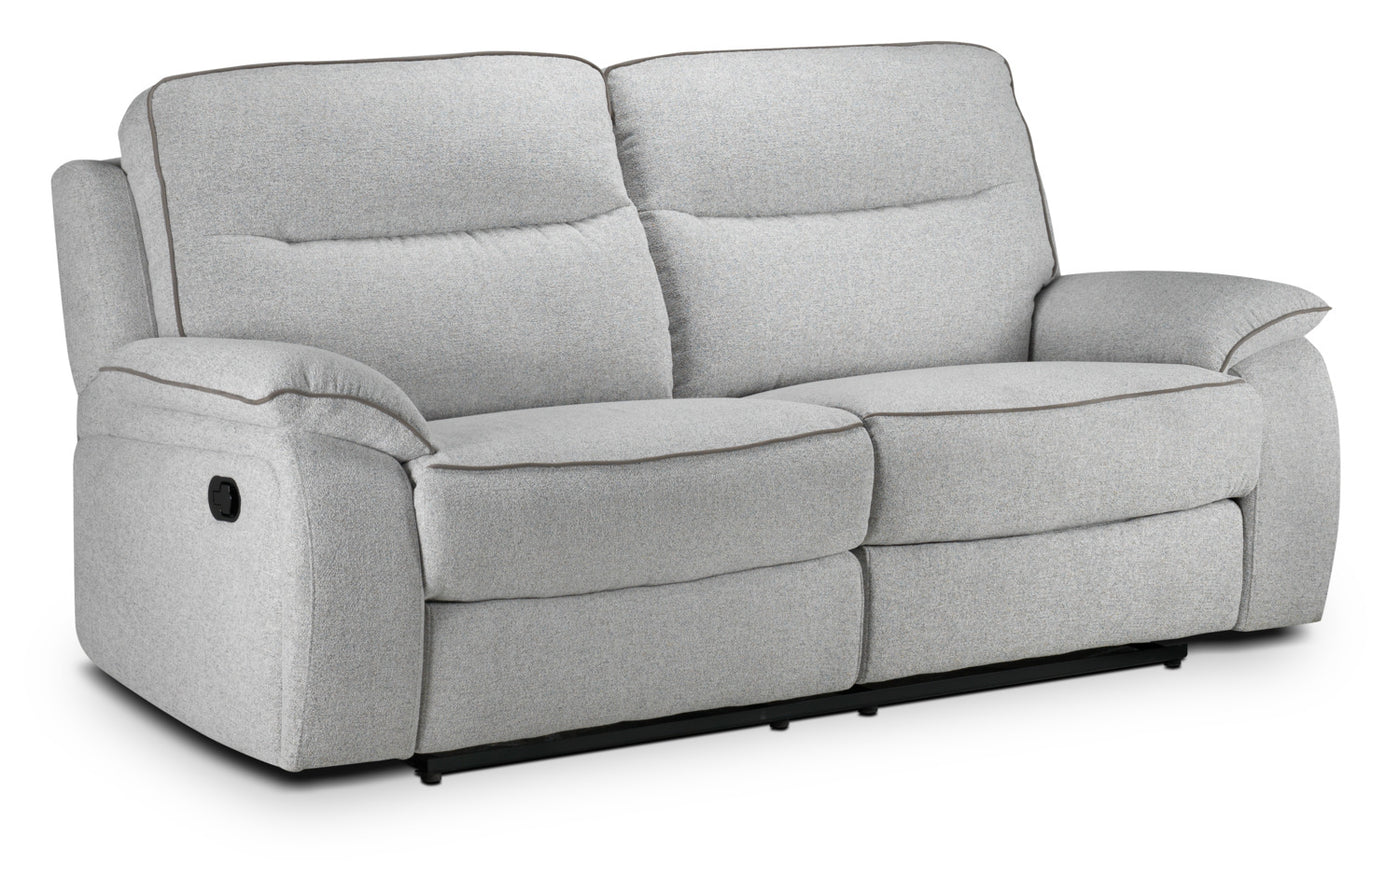 Sensational Latham Reclining Sofa Frost Gmtry Best Dining Table And Chair Ideas Images Gmtryco